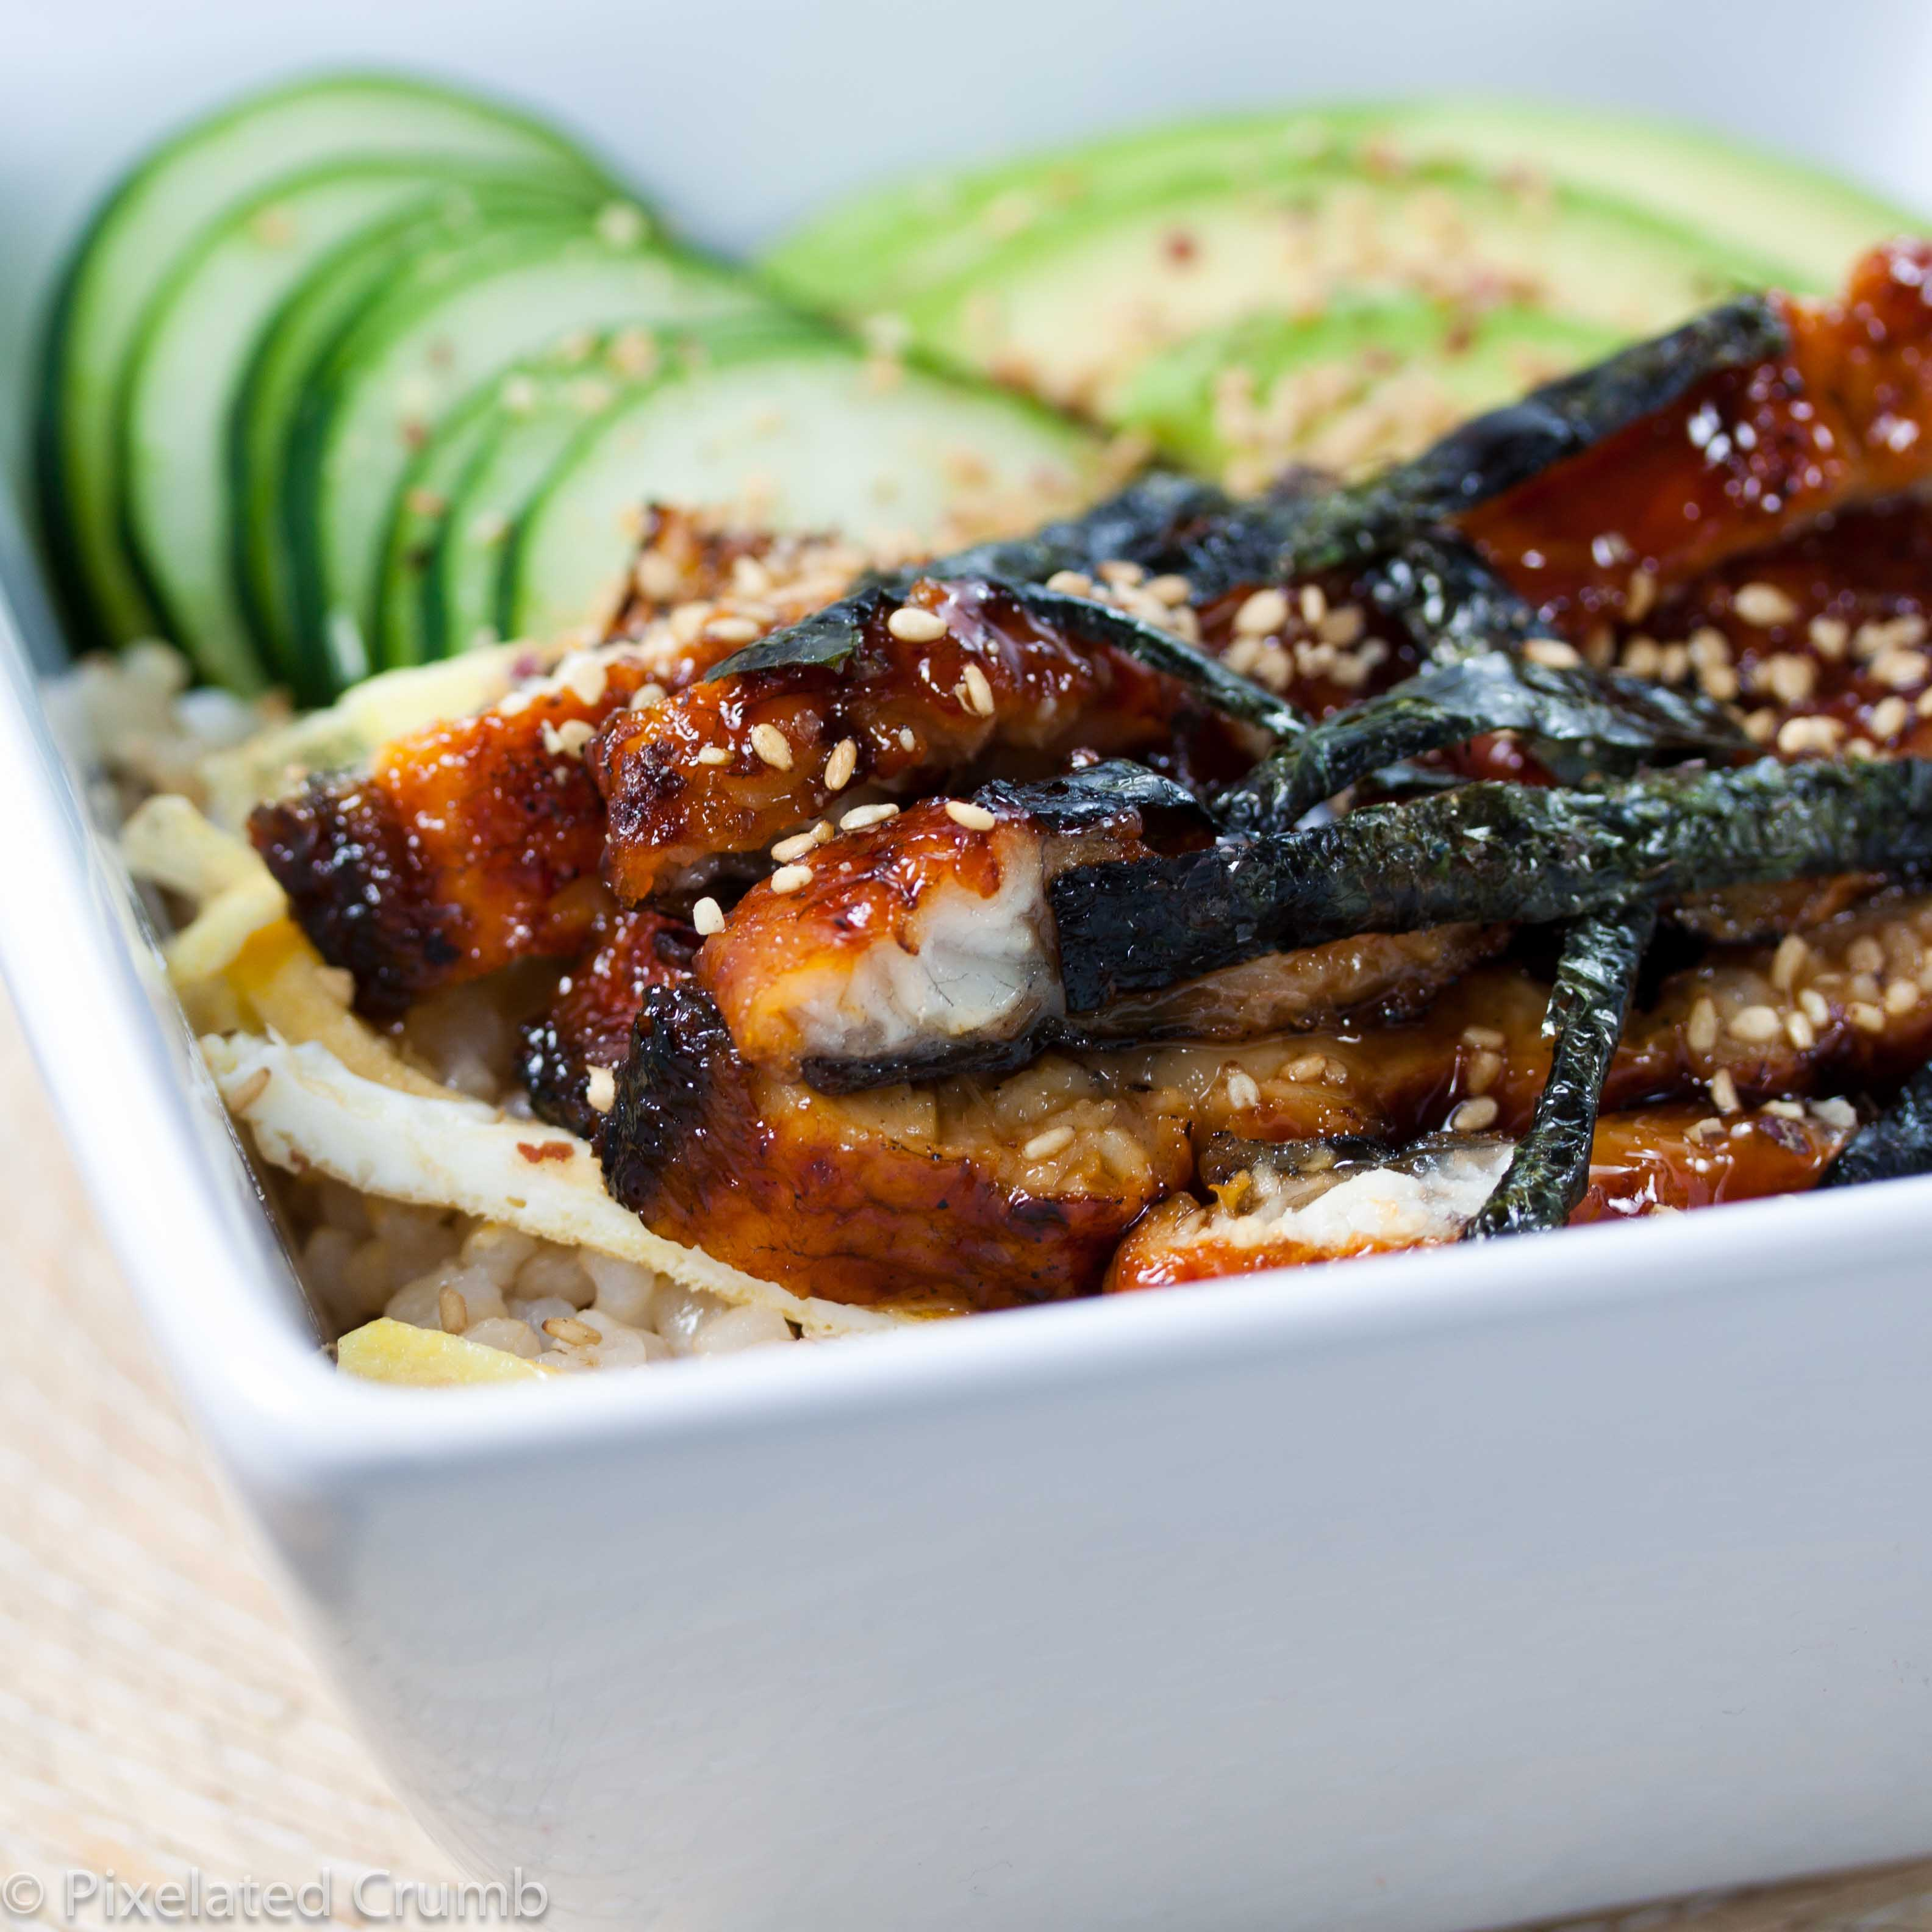 unagi don (unagi sushi rice bowl)